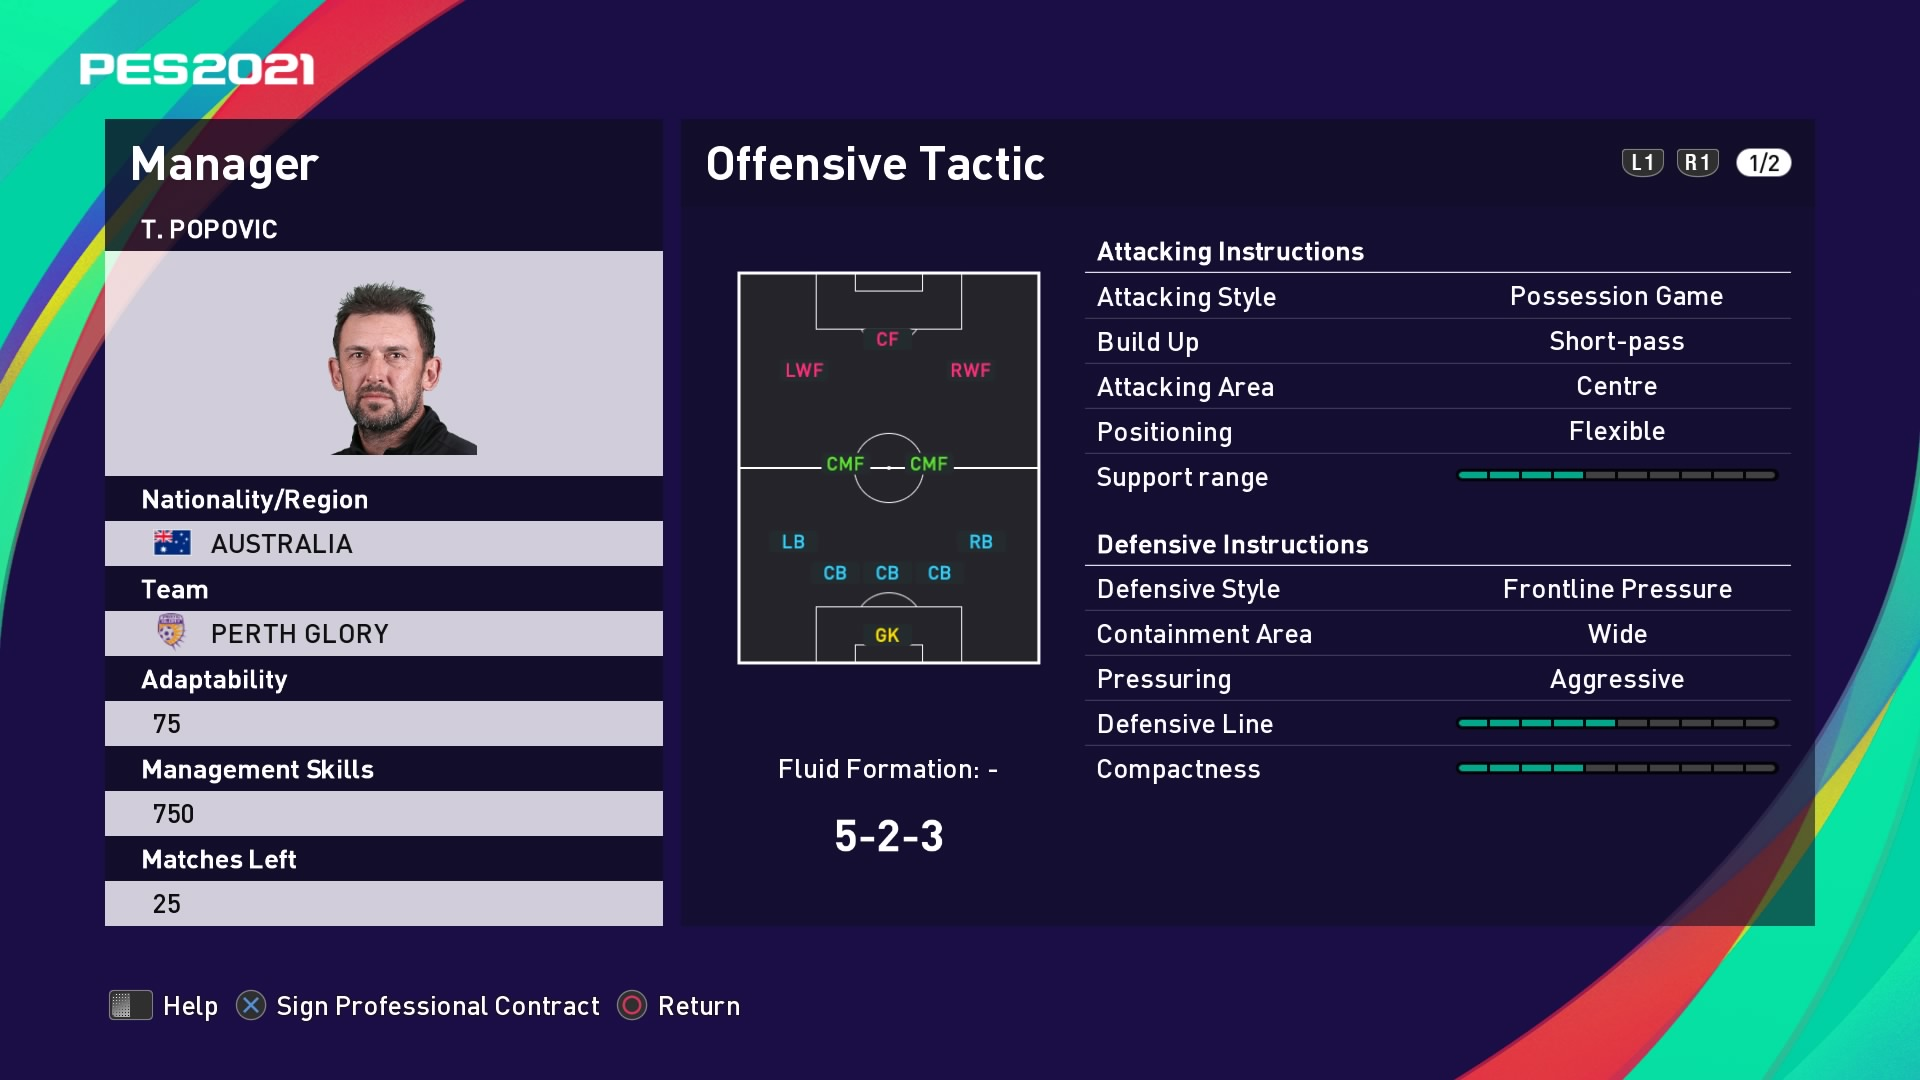 T. Popovic (Tony Popovic) Offensive Tactic in PES 2021 myClub